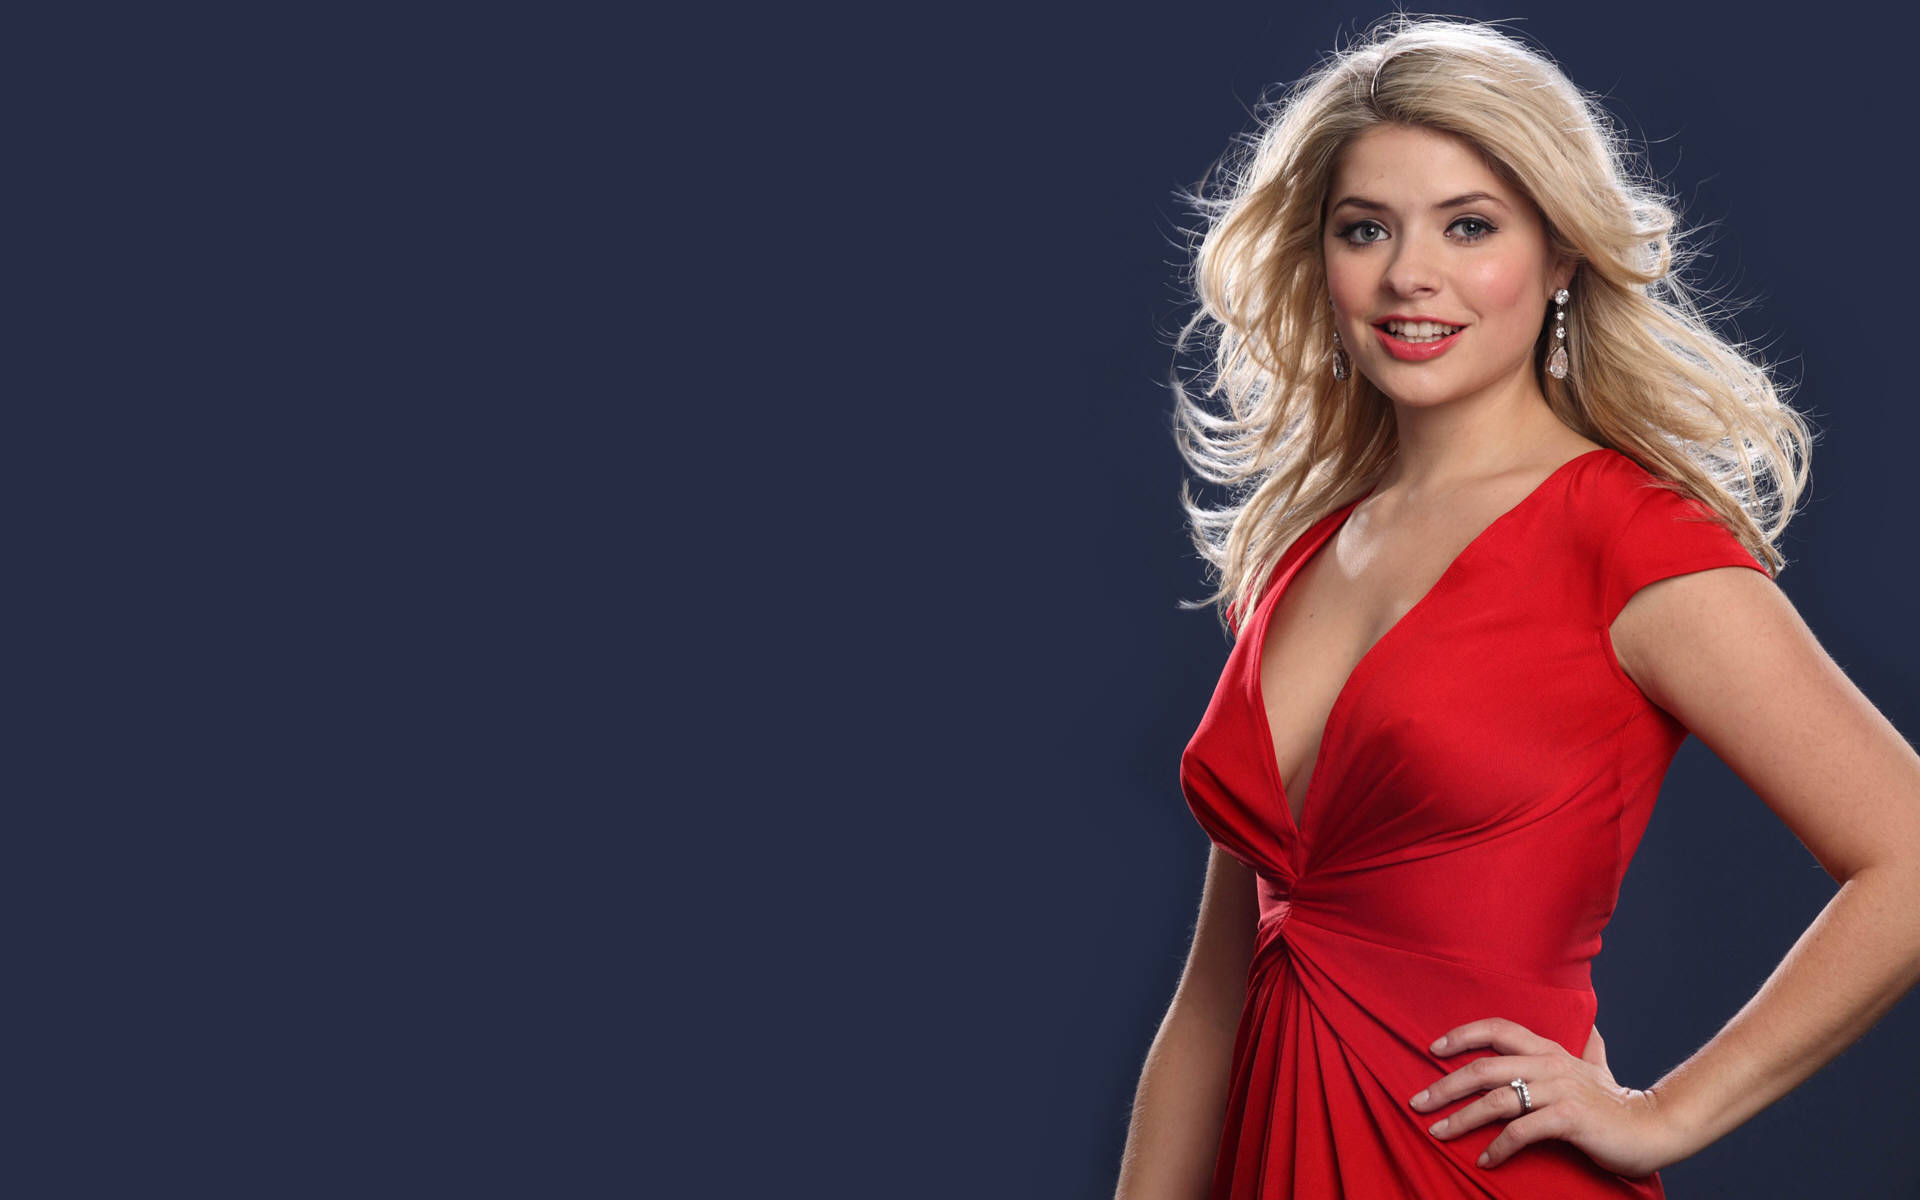 1920x1200 - Holly Willoughby Wallpapers 23